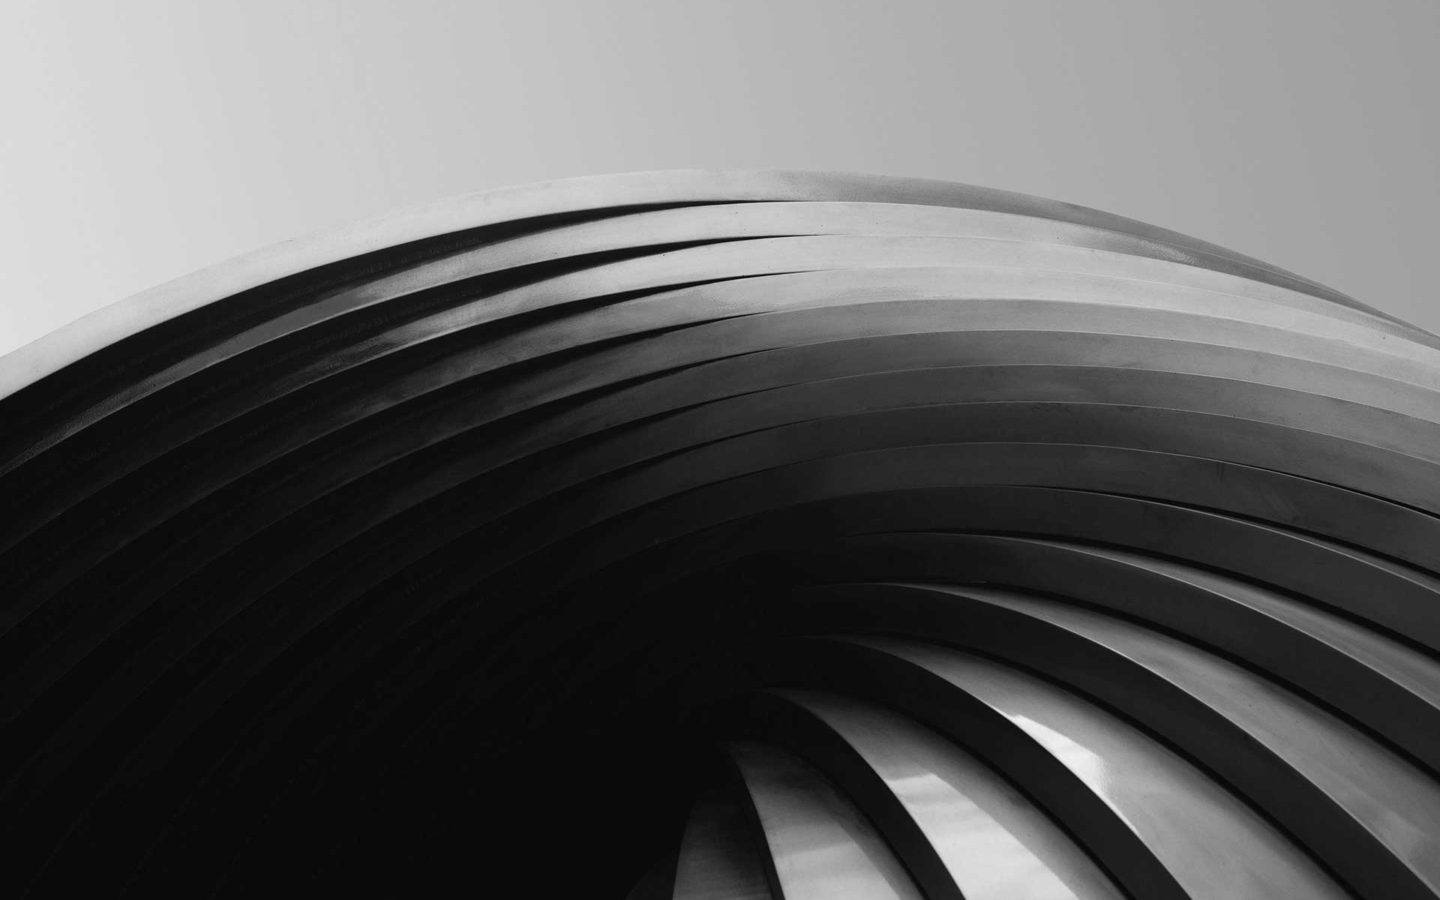 black and white abstract curved architecture